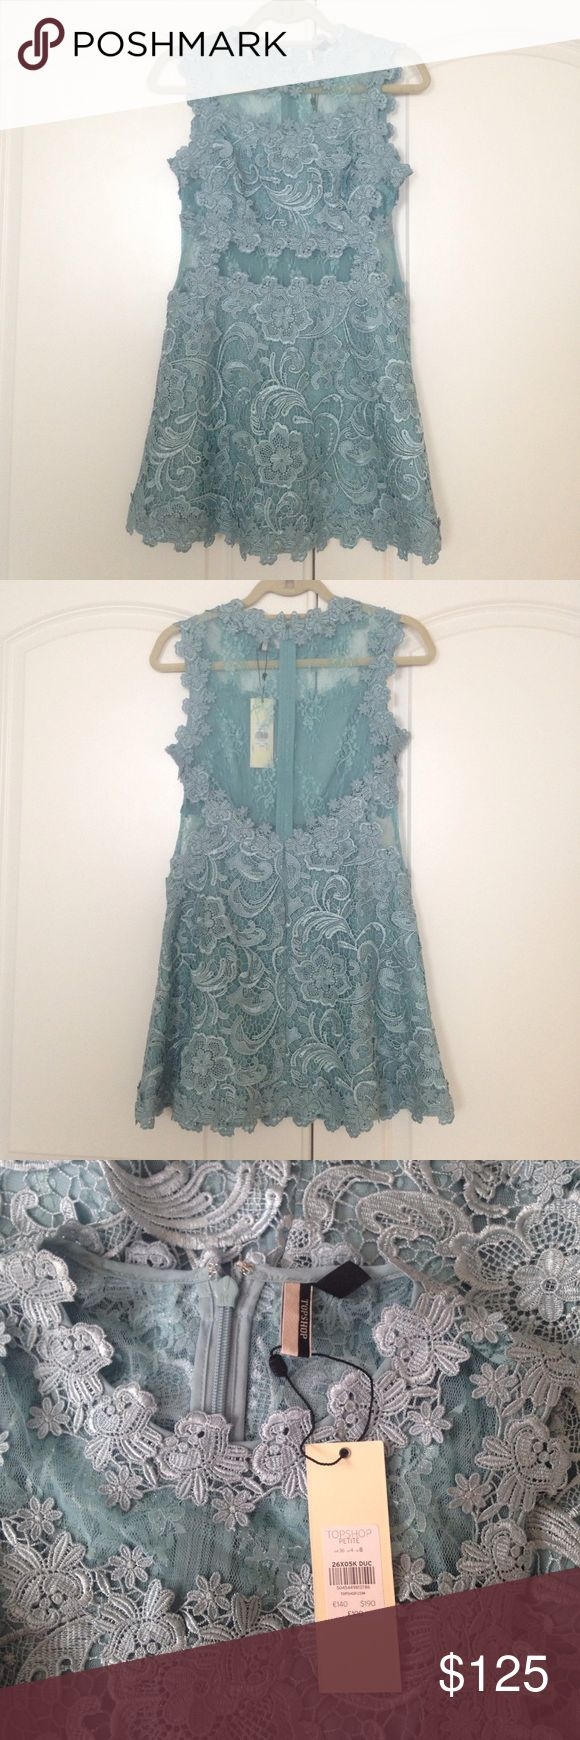 Topshop lace dress Topshop turquoise lace dress. Brand new with tags. Topshop PETITE Dresses